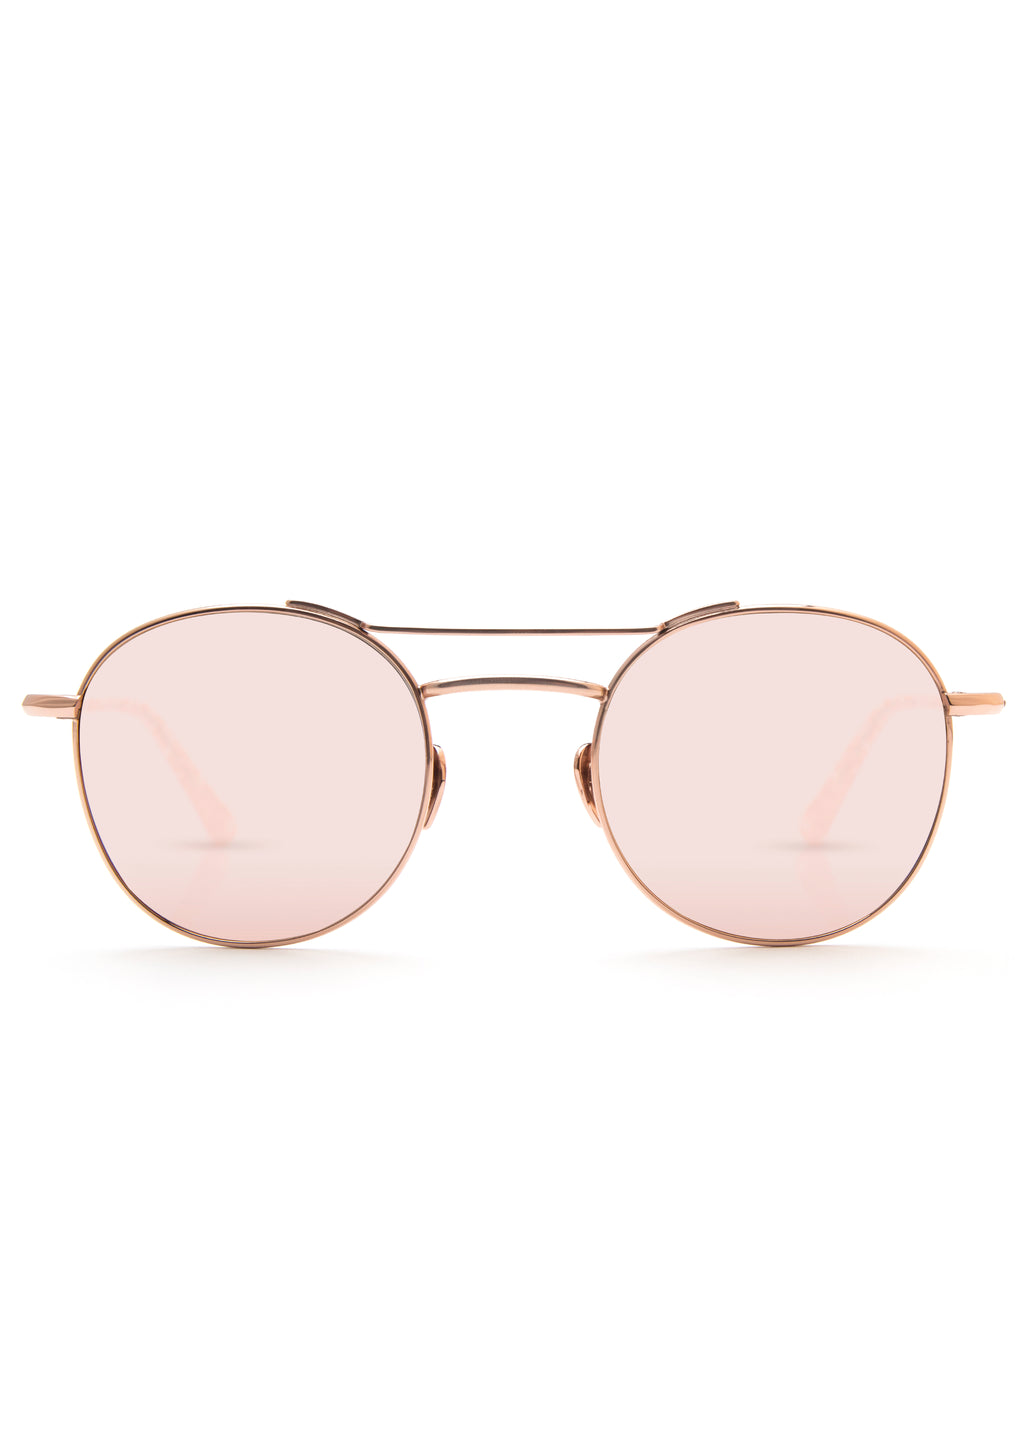 Krewe orleans sunglasses rose gold titanium